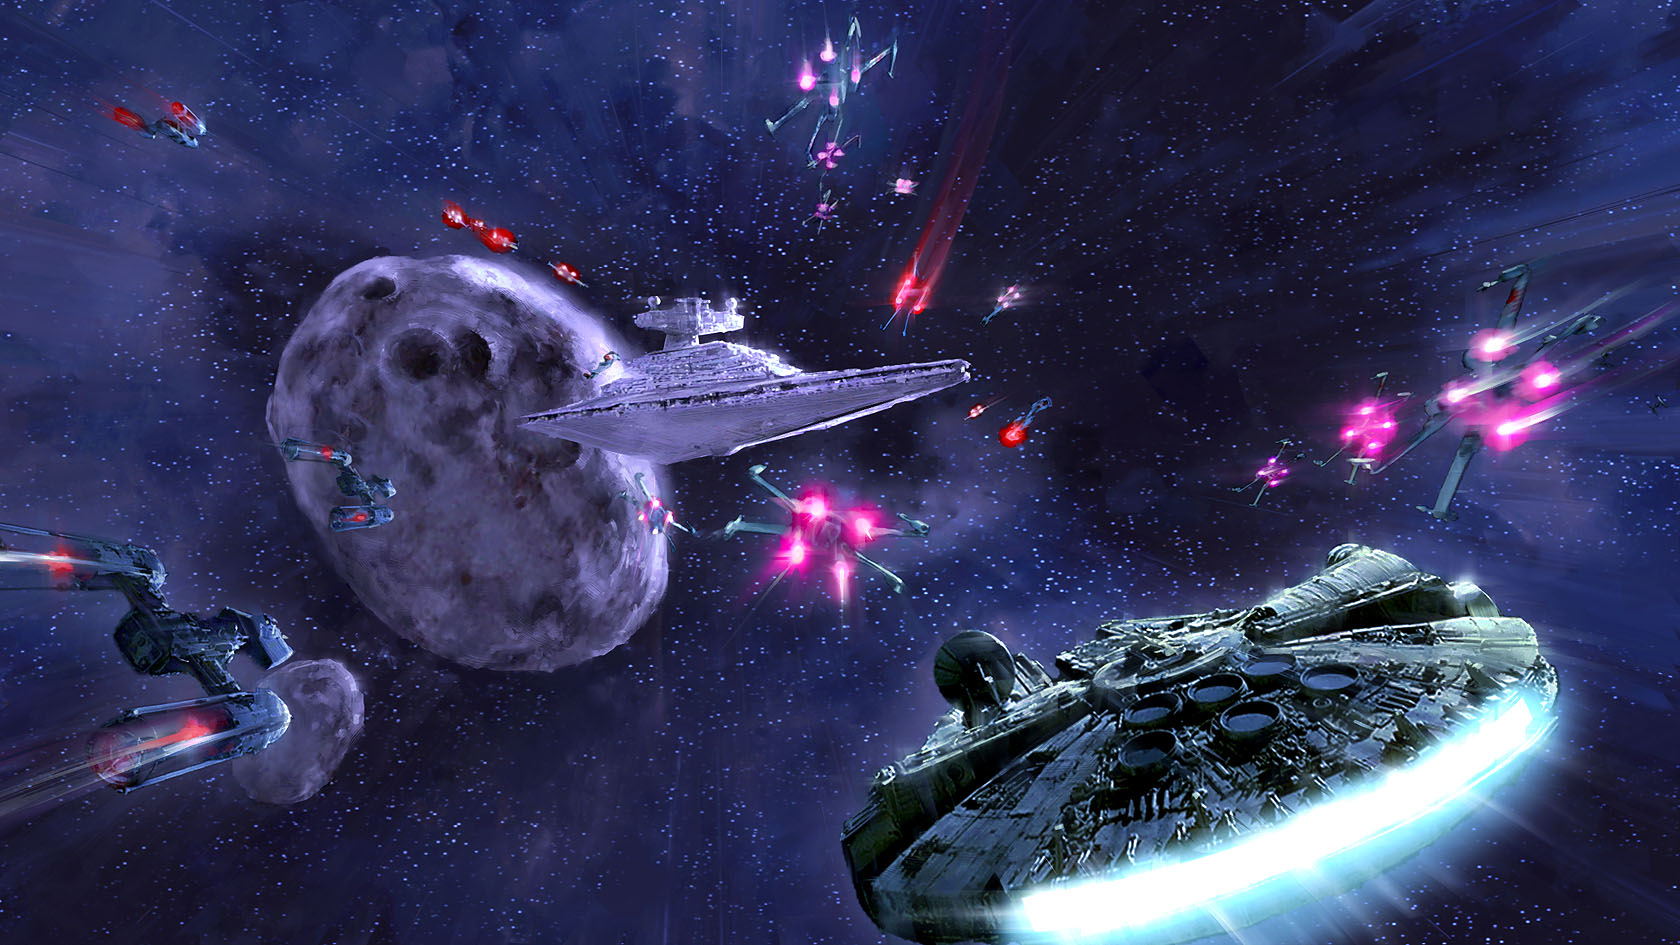 Star Wars Battlefront: Renegade Squadron (Concept Art ...